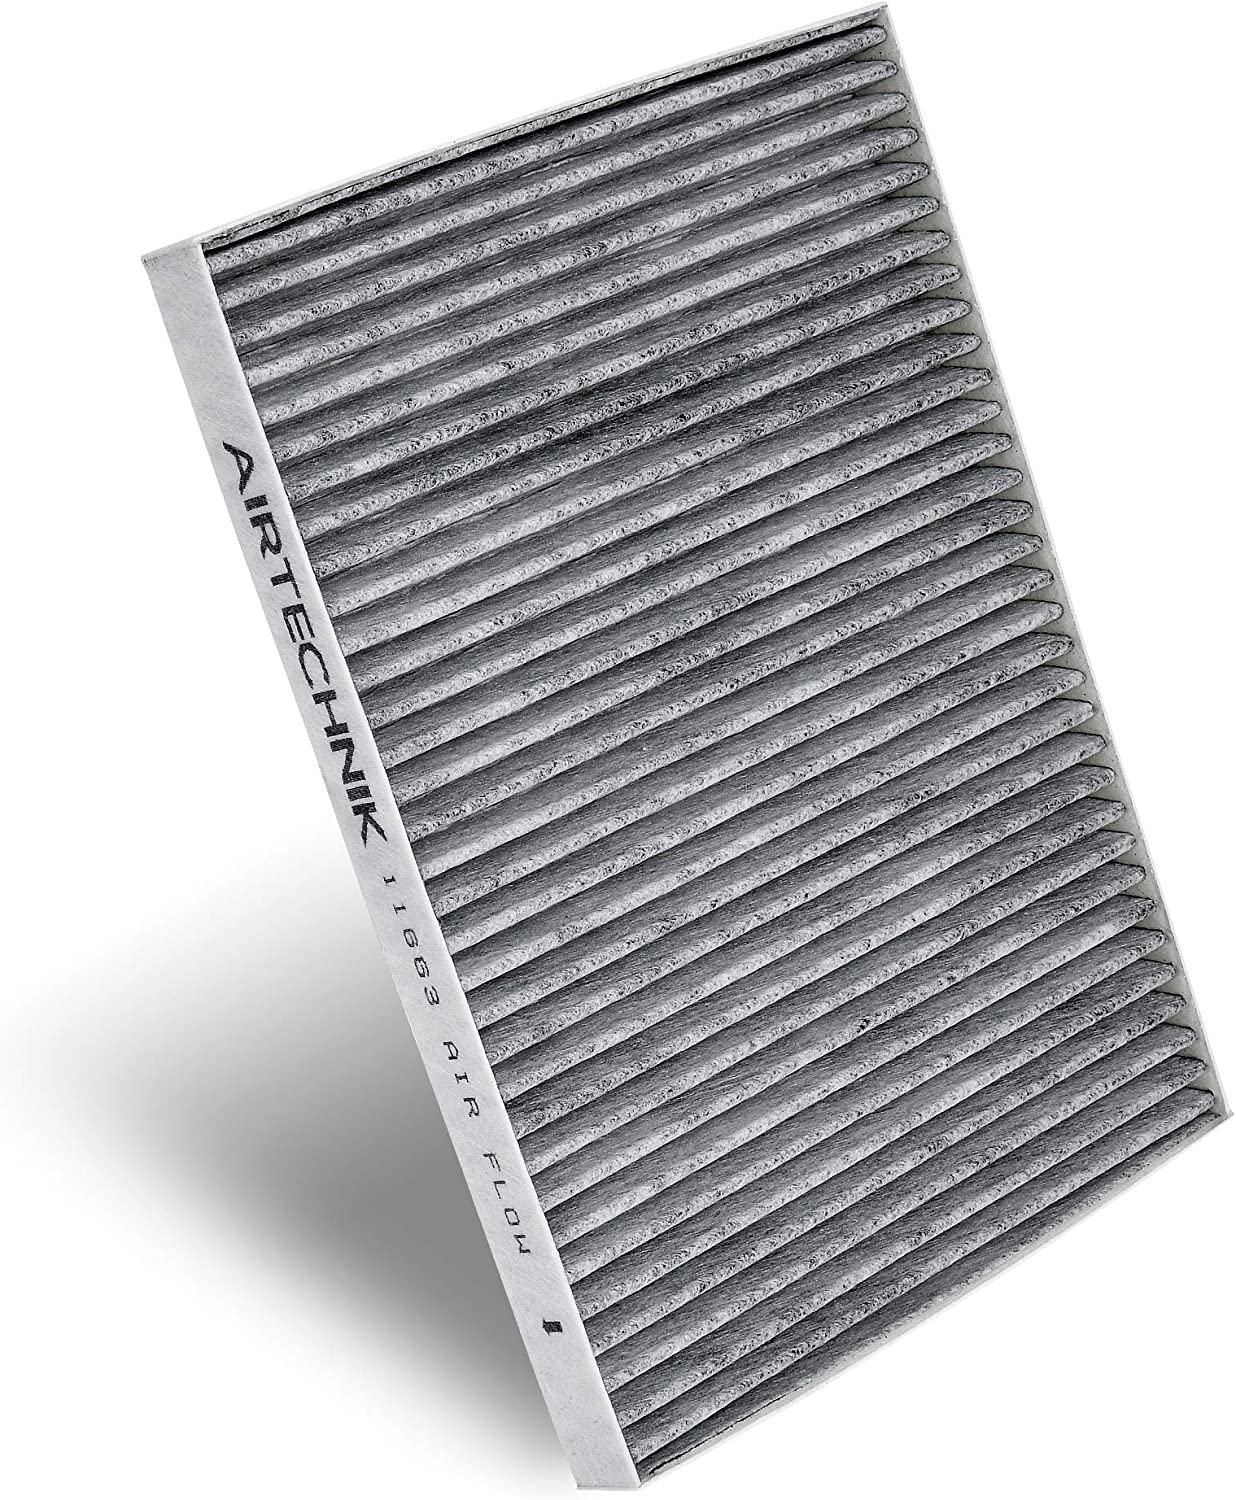 Premium Cabin Air Filter w//Activated Carbon AirTechnik CF11663 Replacement for GMC//Chevy//Buick//Saturn